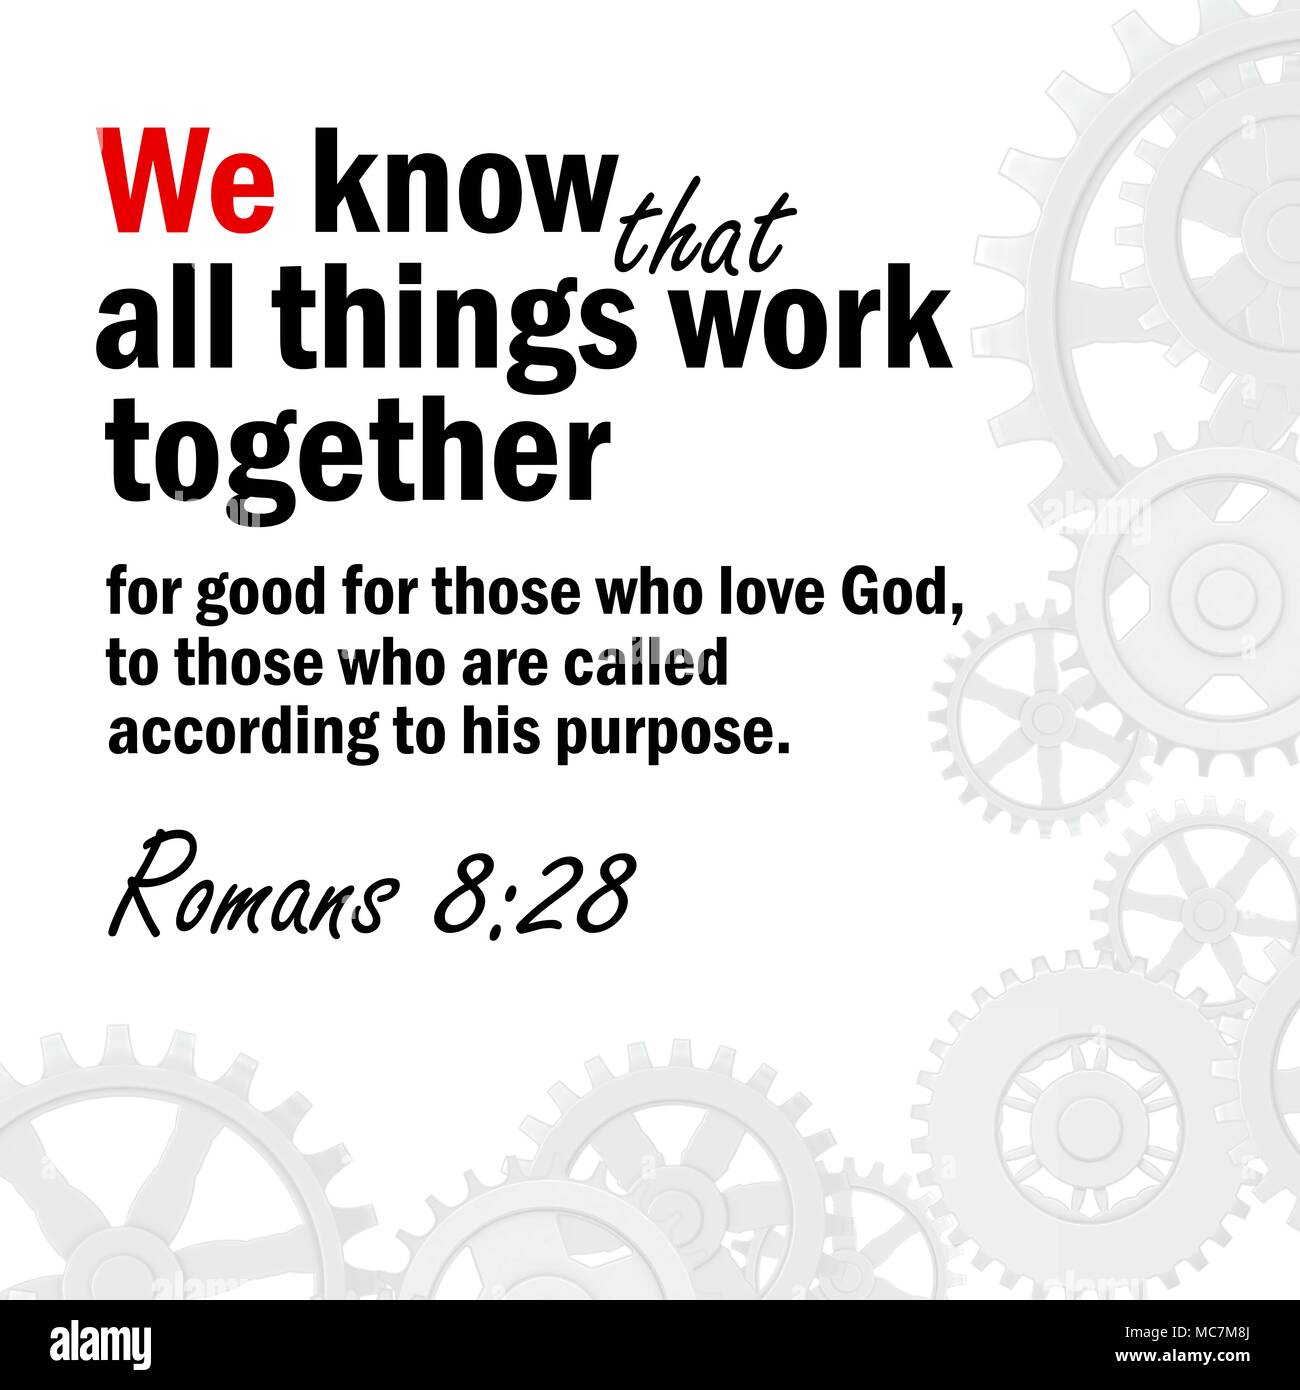 we know that all things work together for good for those who love